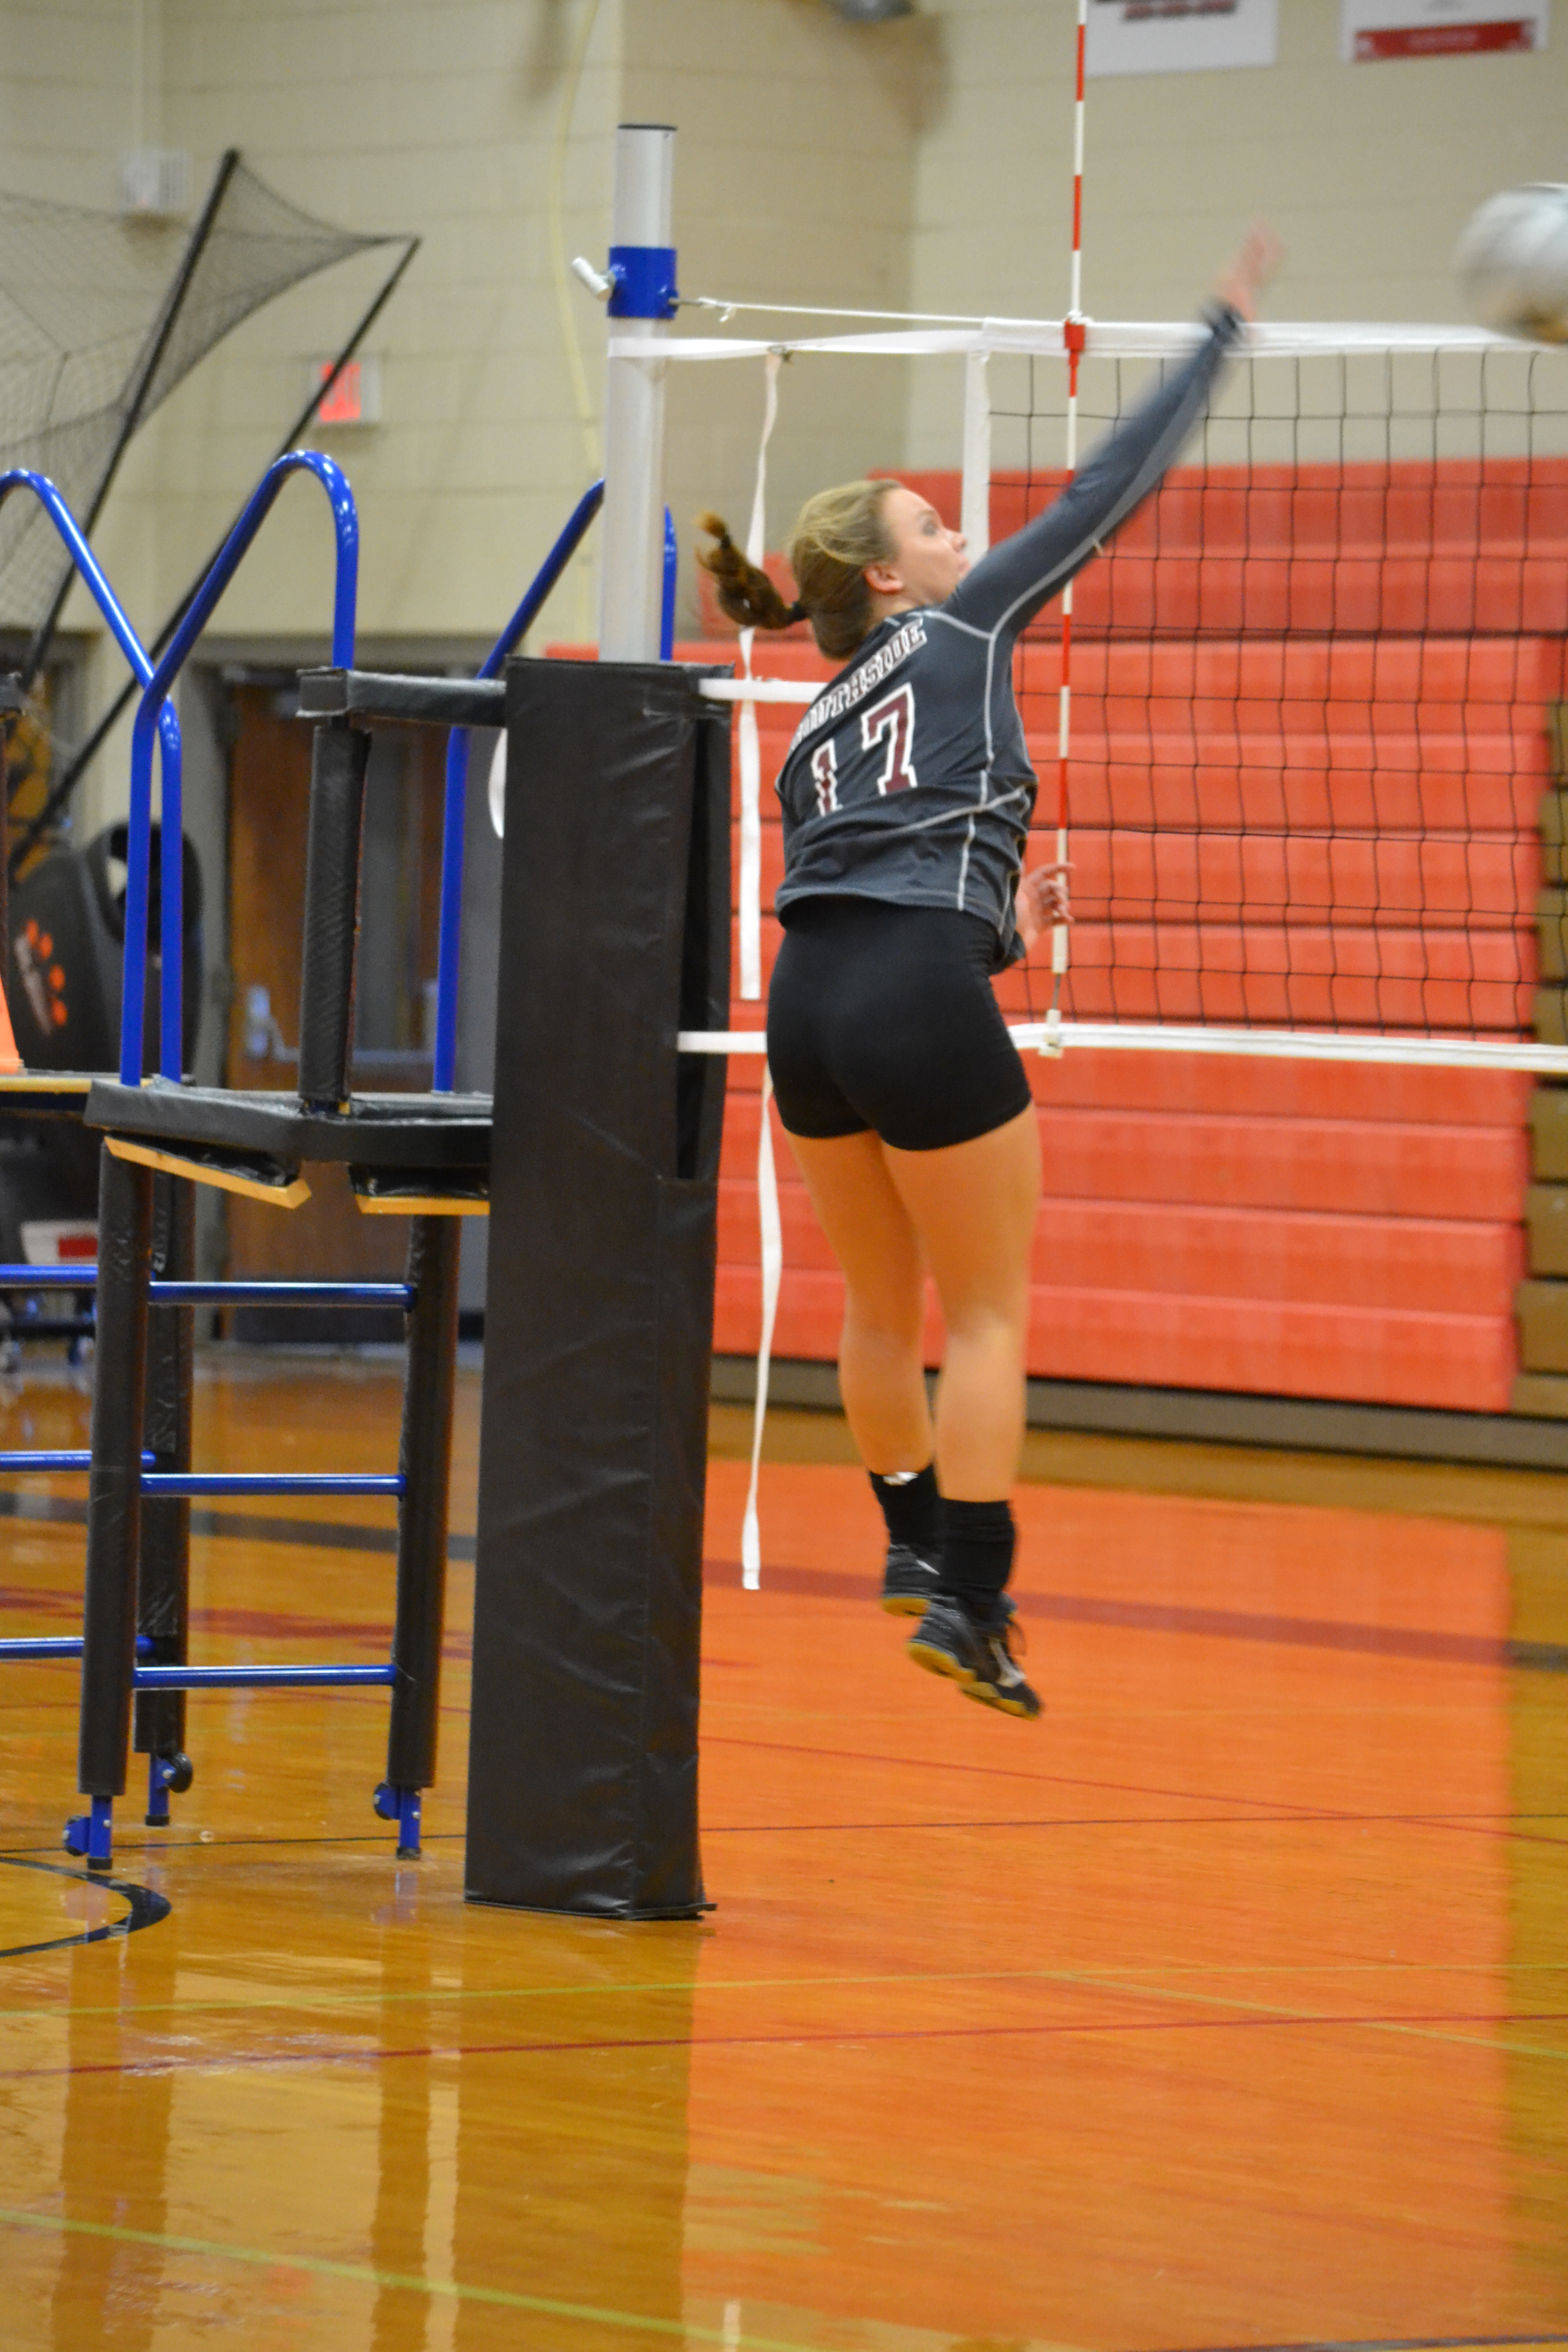 Volleyball Tryouts April 24, 3:30-5:30 for Girls Entering 9th-12th Grade